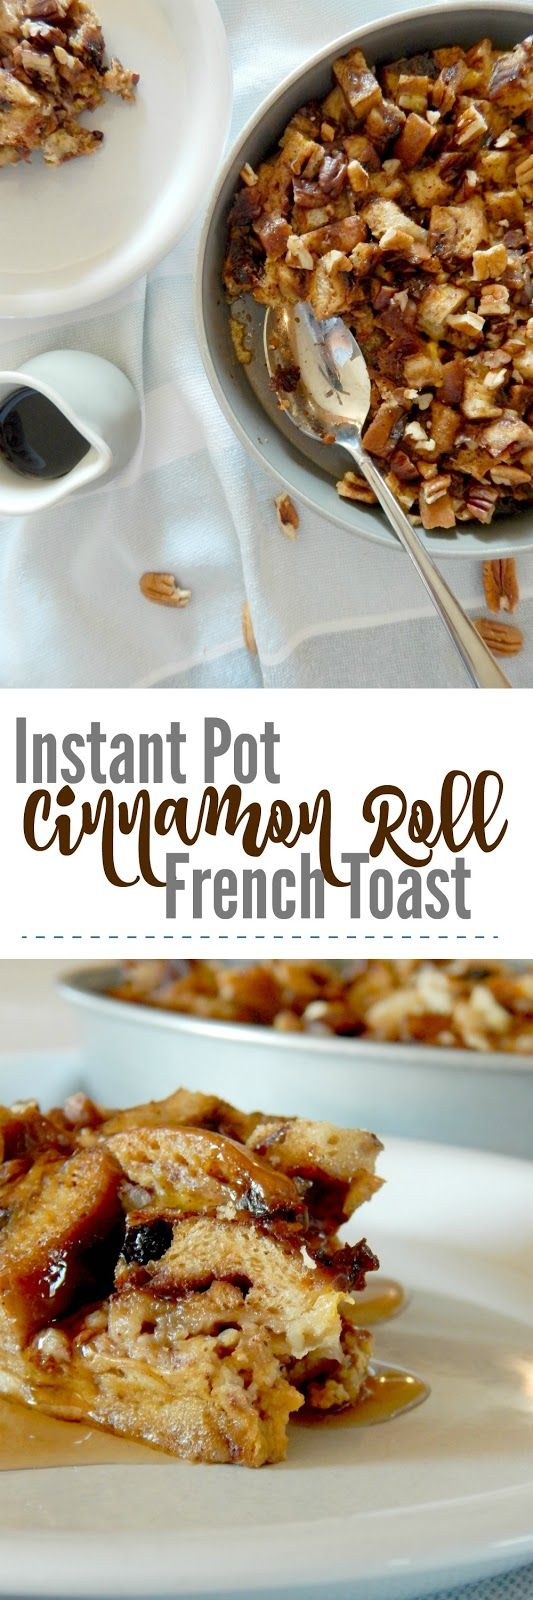 Instant Pot Cinnamon Roll French Toast...this easy start-to-finish 30 minute version is delicious!  Cinnamon swirl bread, an egg custard, chopped pecans, maple syrup...it's the best easy, home baked breakfast!